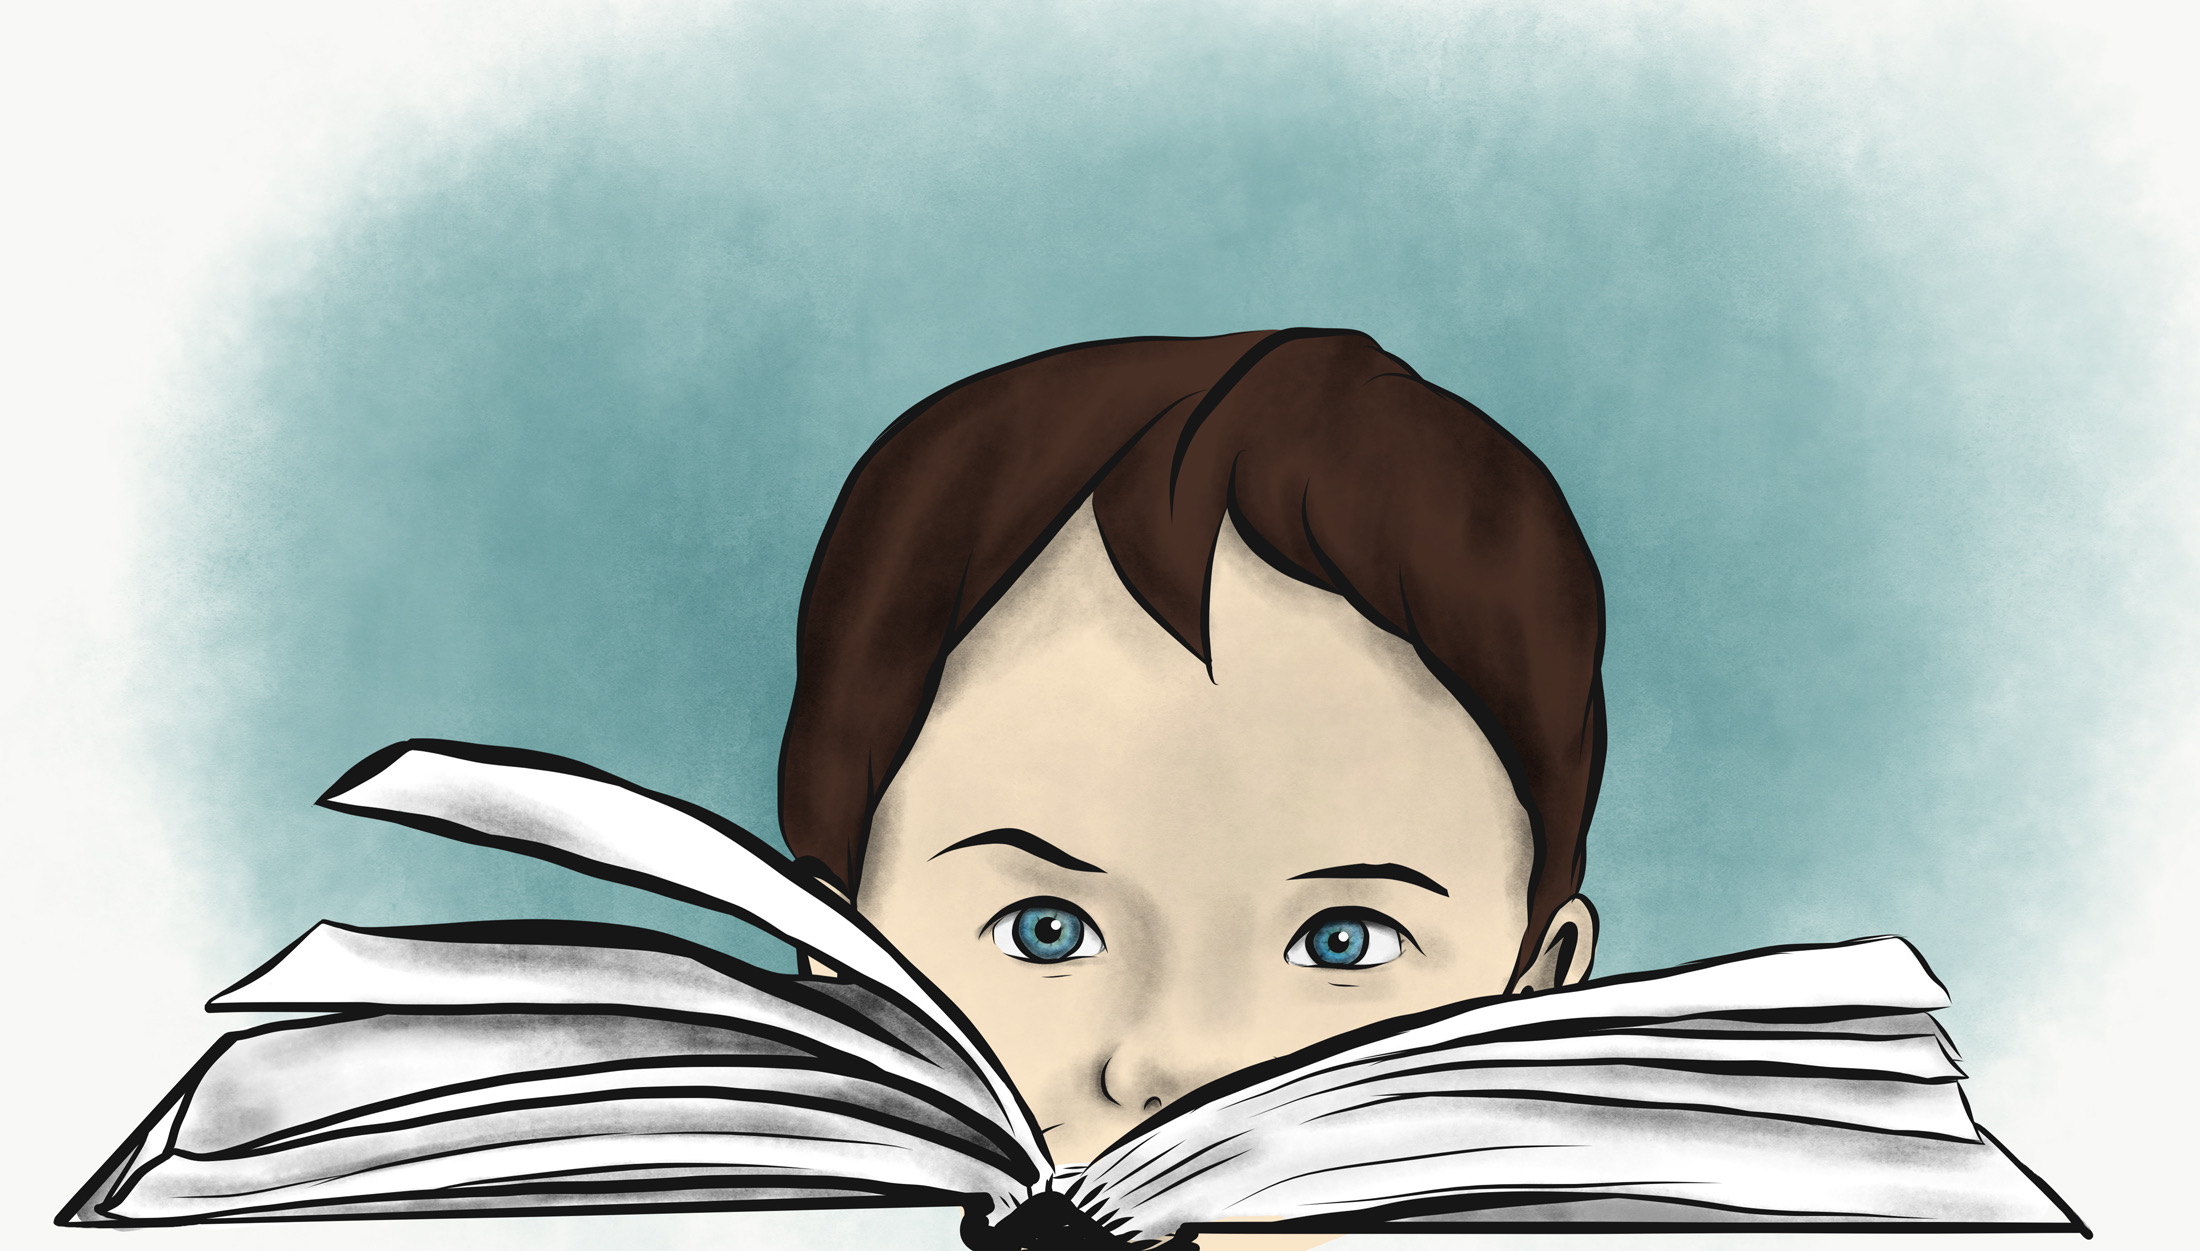 boy with a book illustration